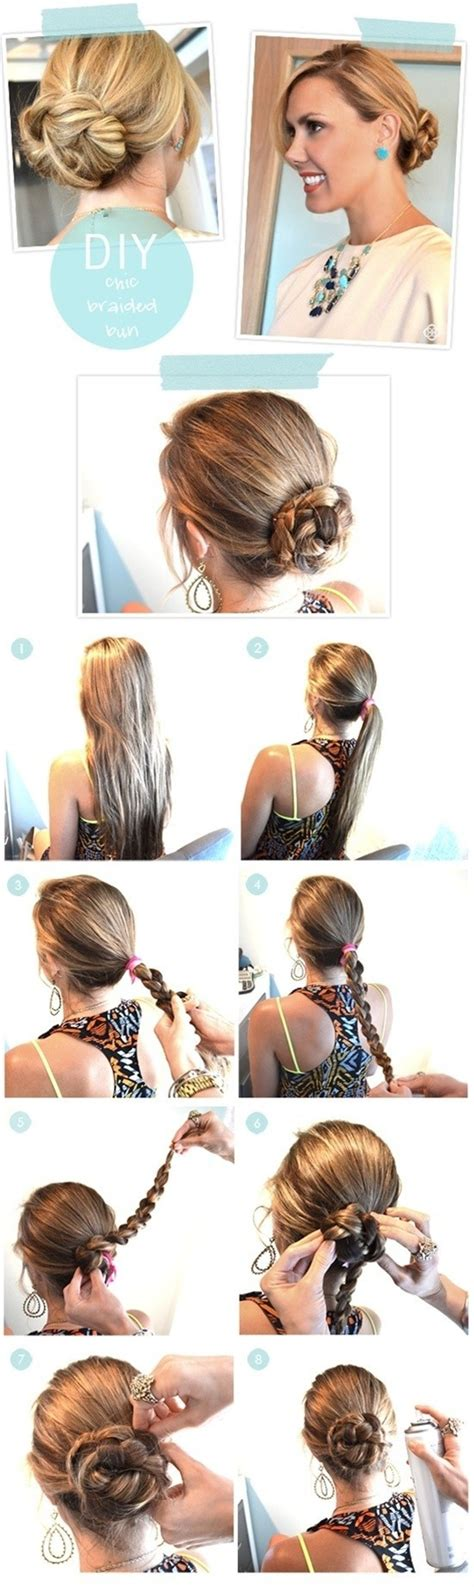 do it yourself styles for short hair do it yourself hairstyles for short hair hair style and